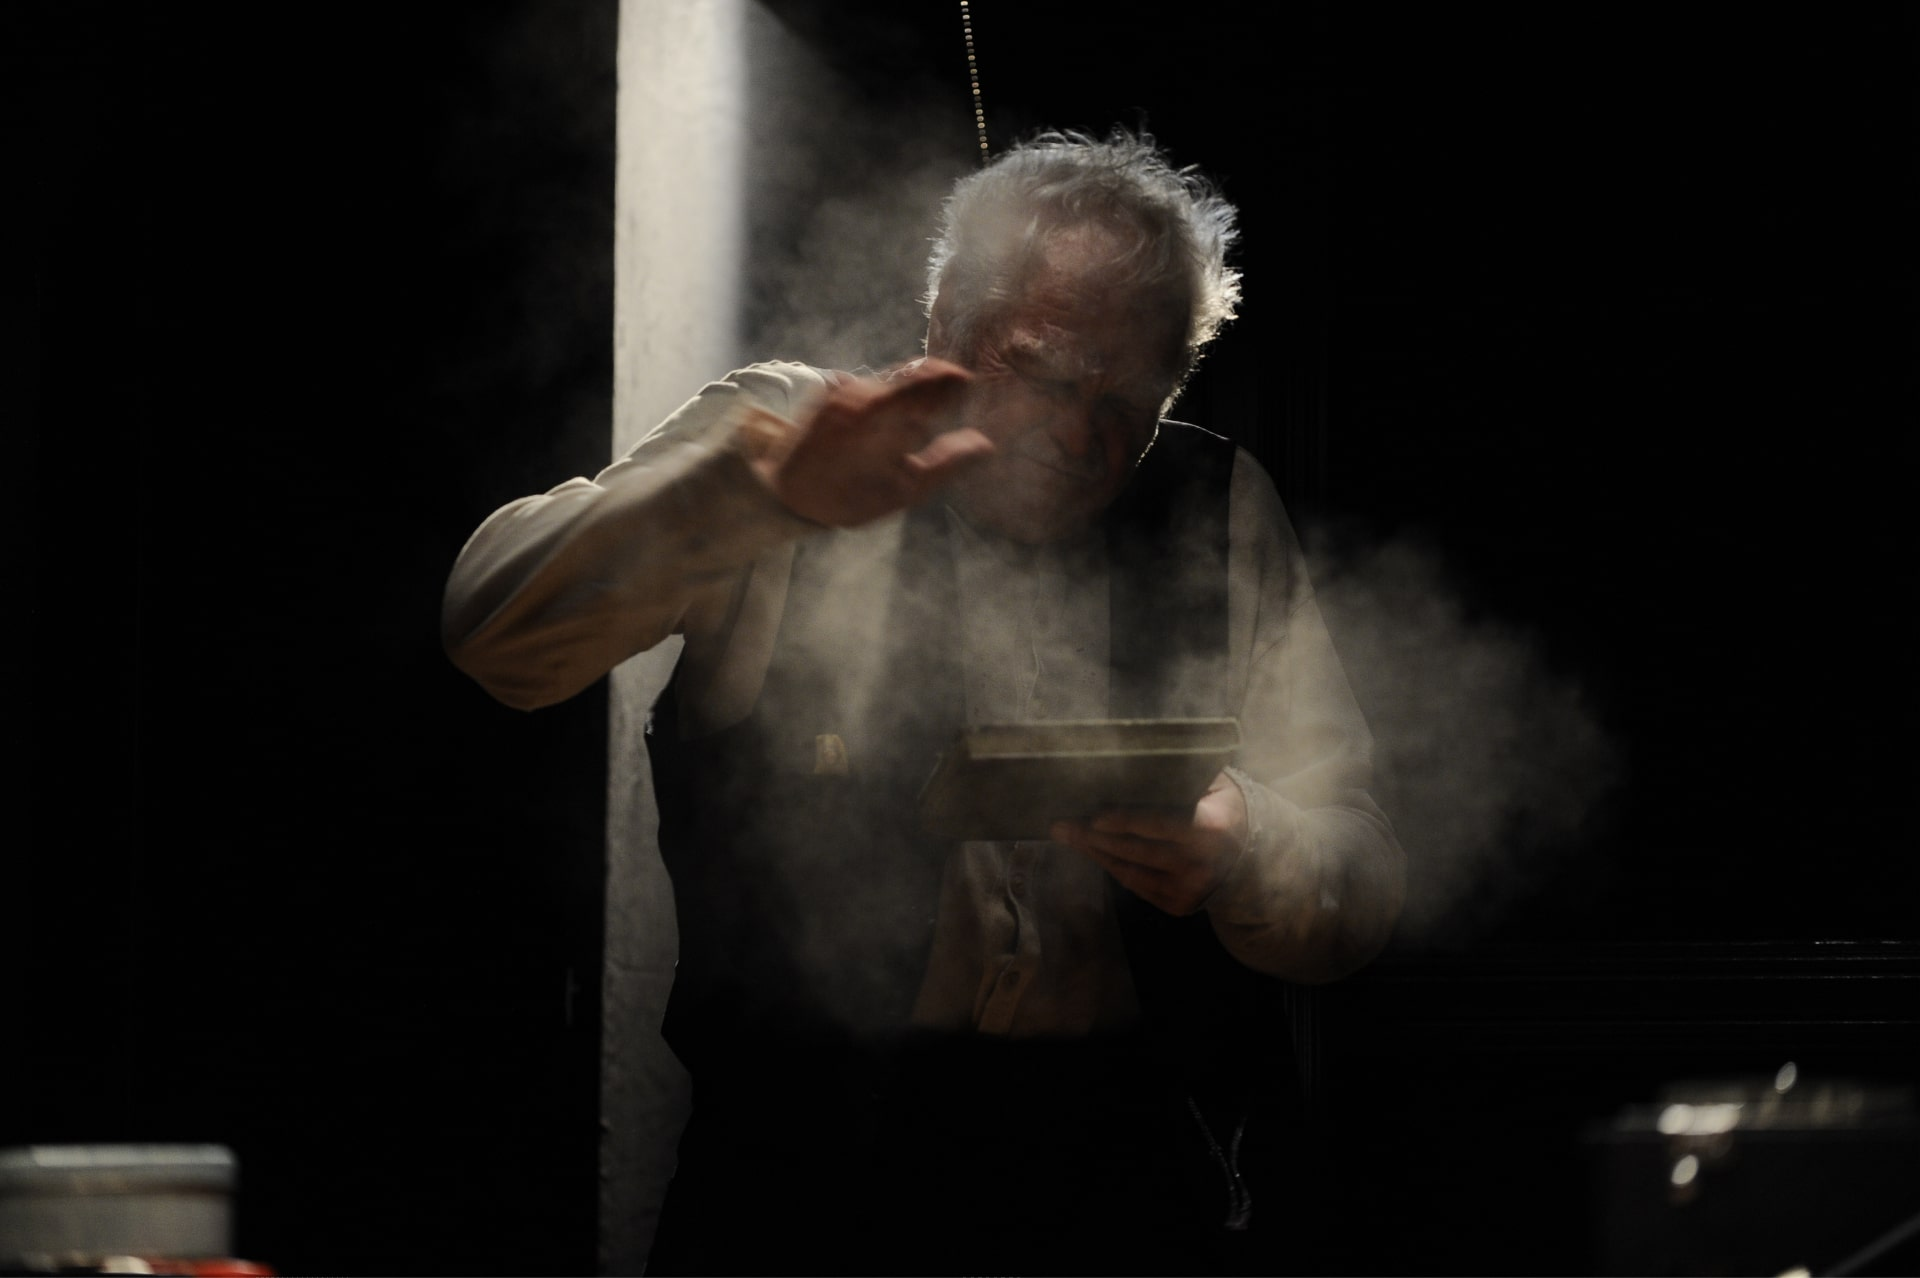 Older man in waistcoat thumps dust from book in front of strong shaft of light.